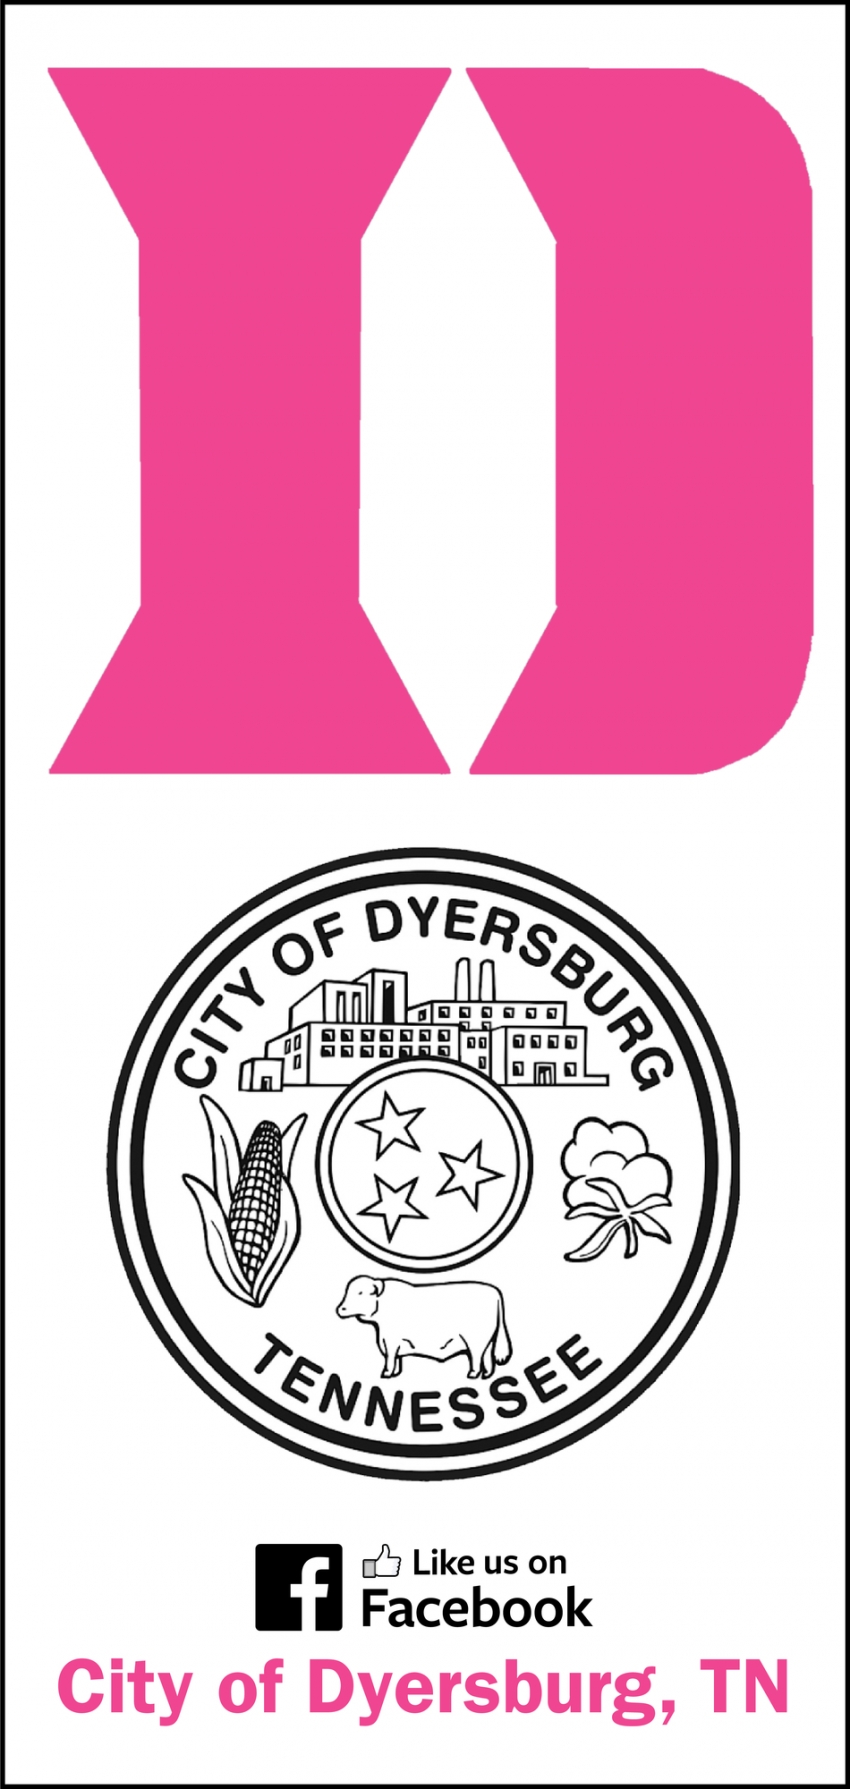 City of Dyersburg